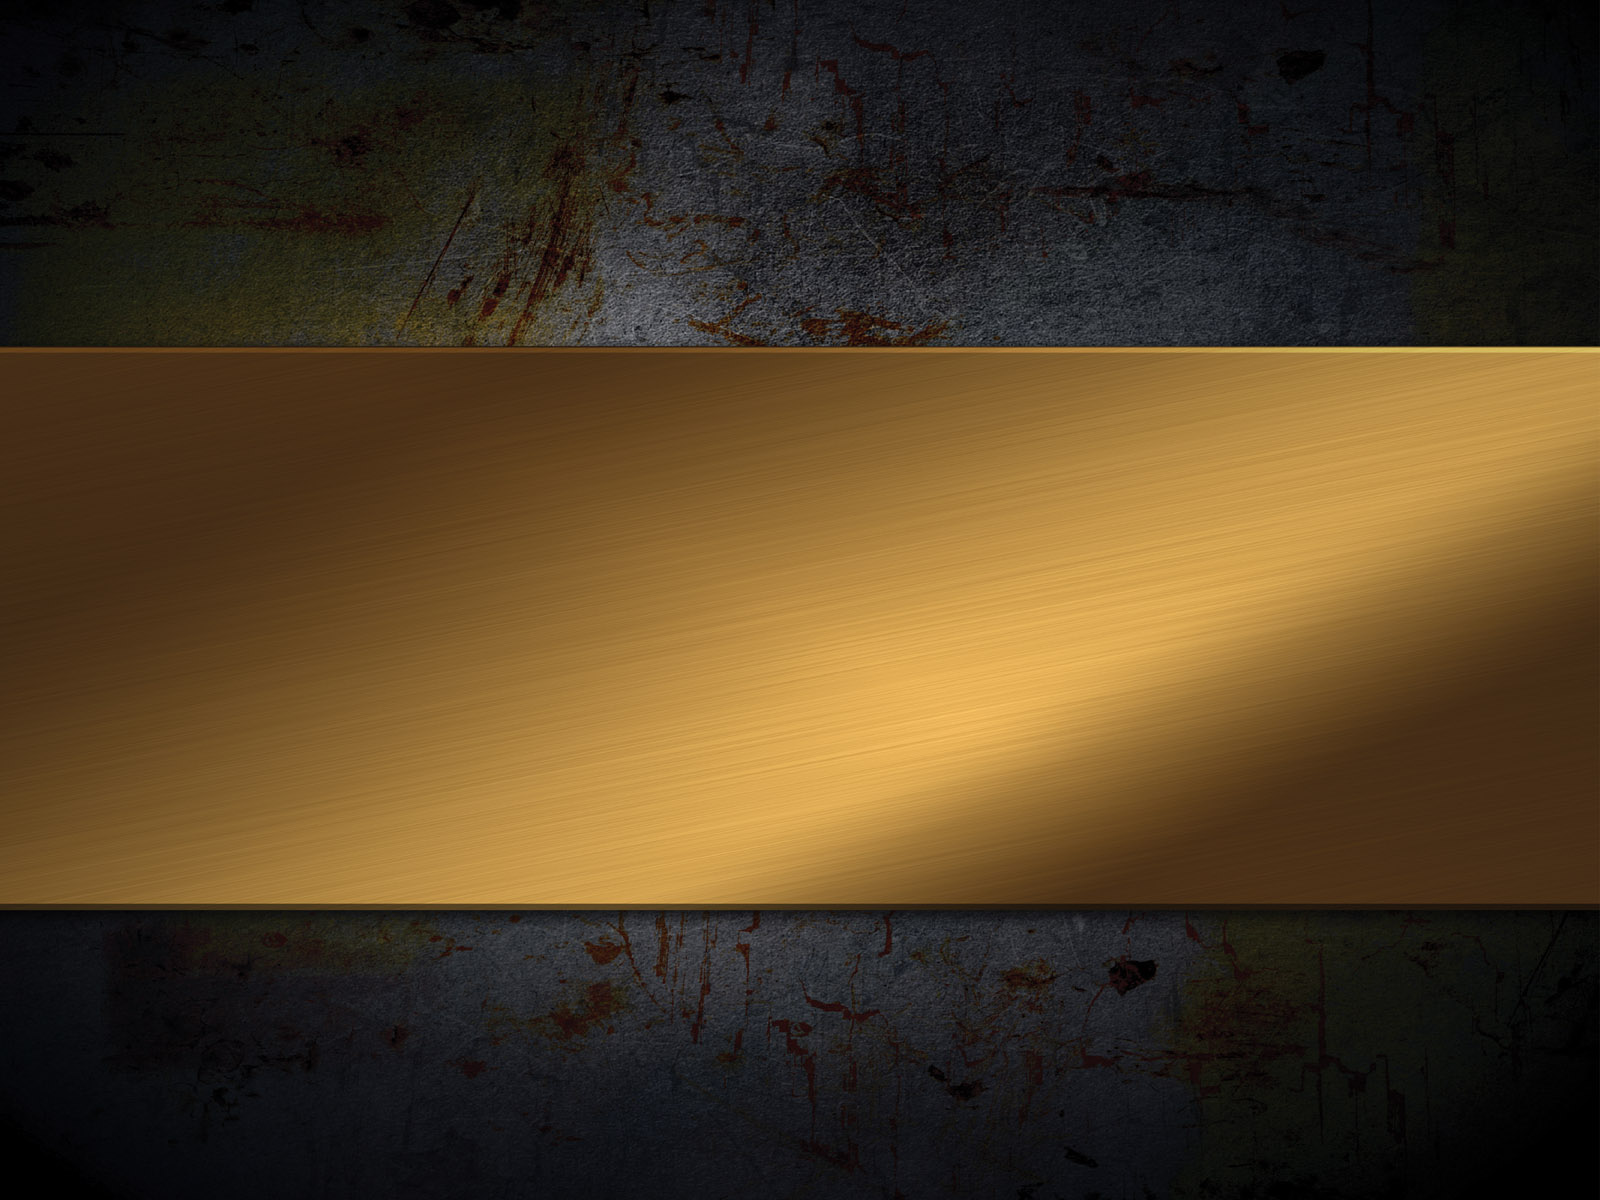 Black Wallpapers High Resolution: Black And Gold Background 4 High Resolution Wallpaper